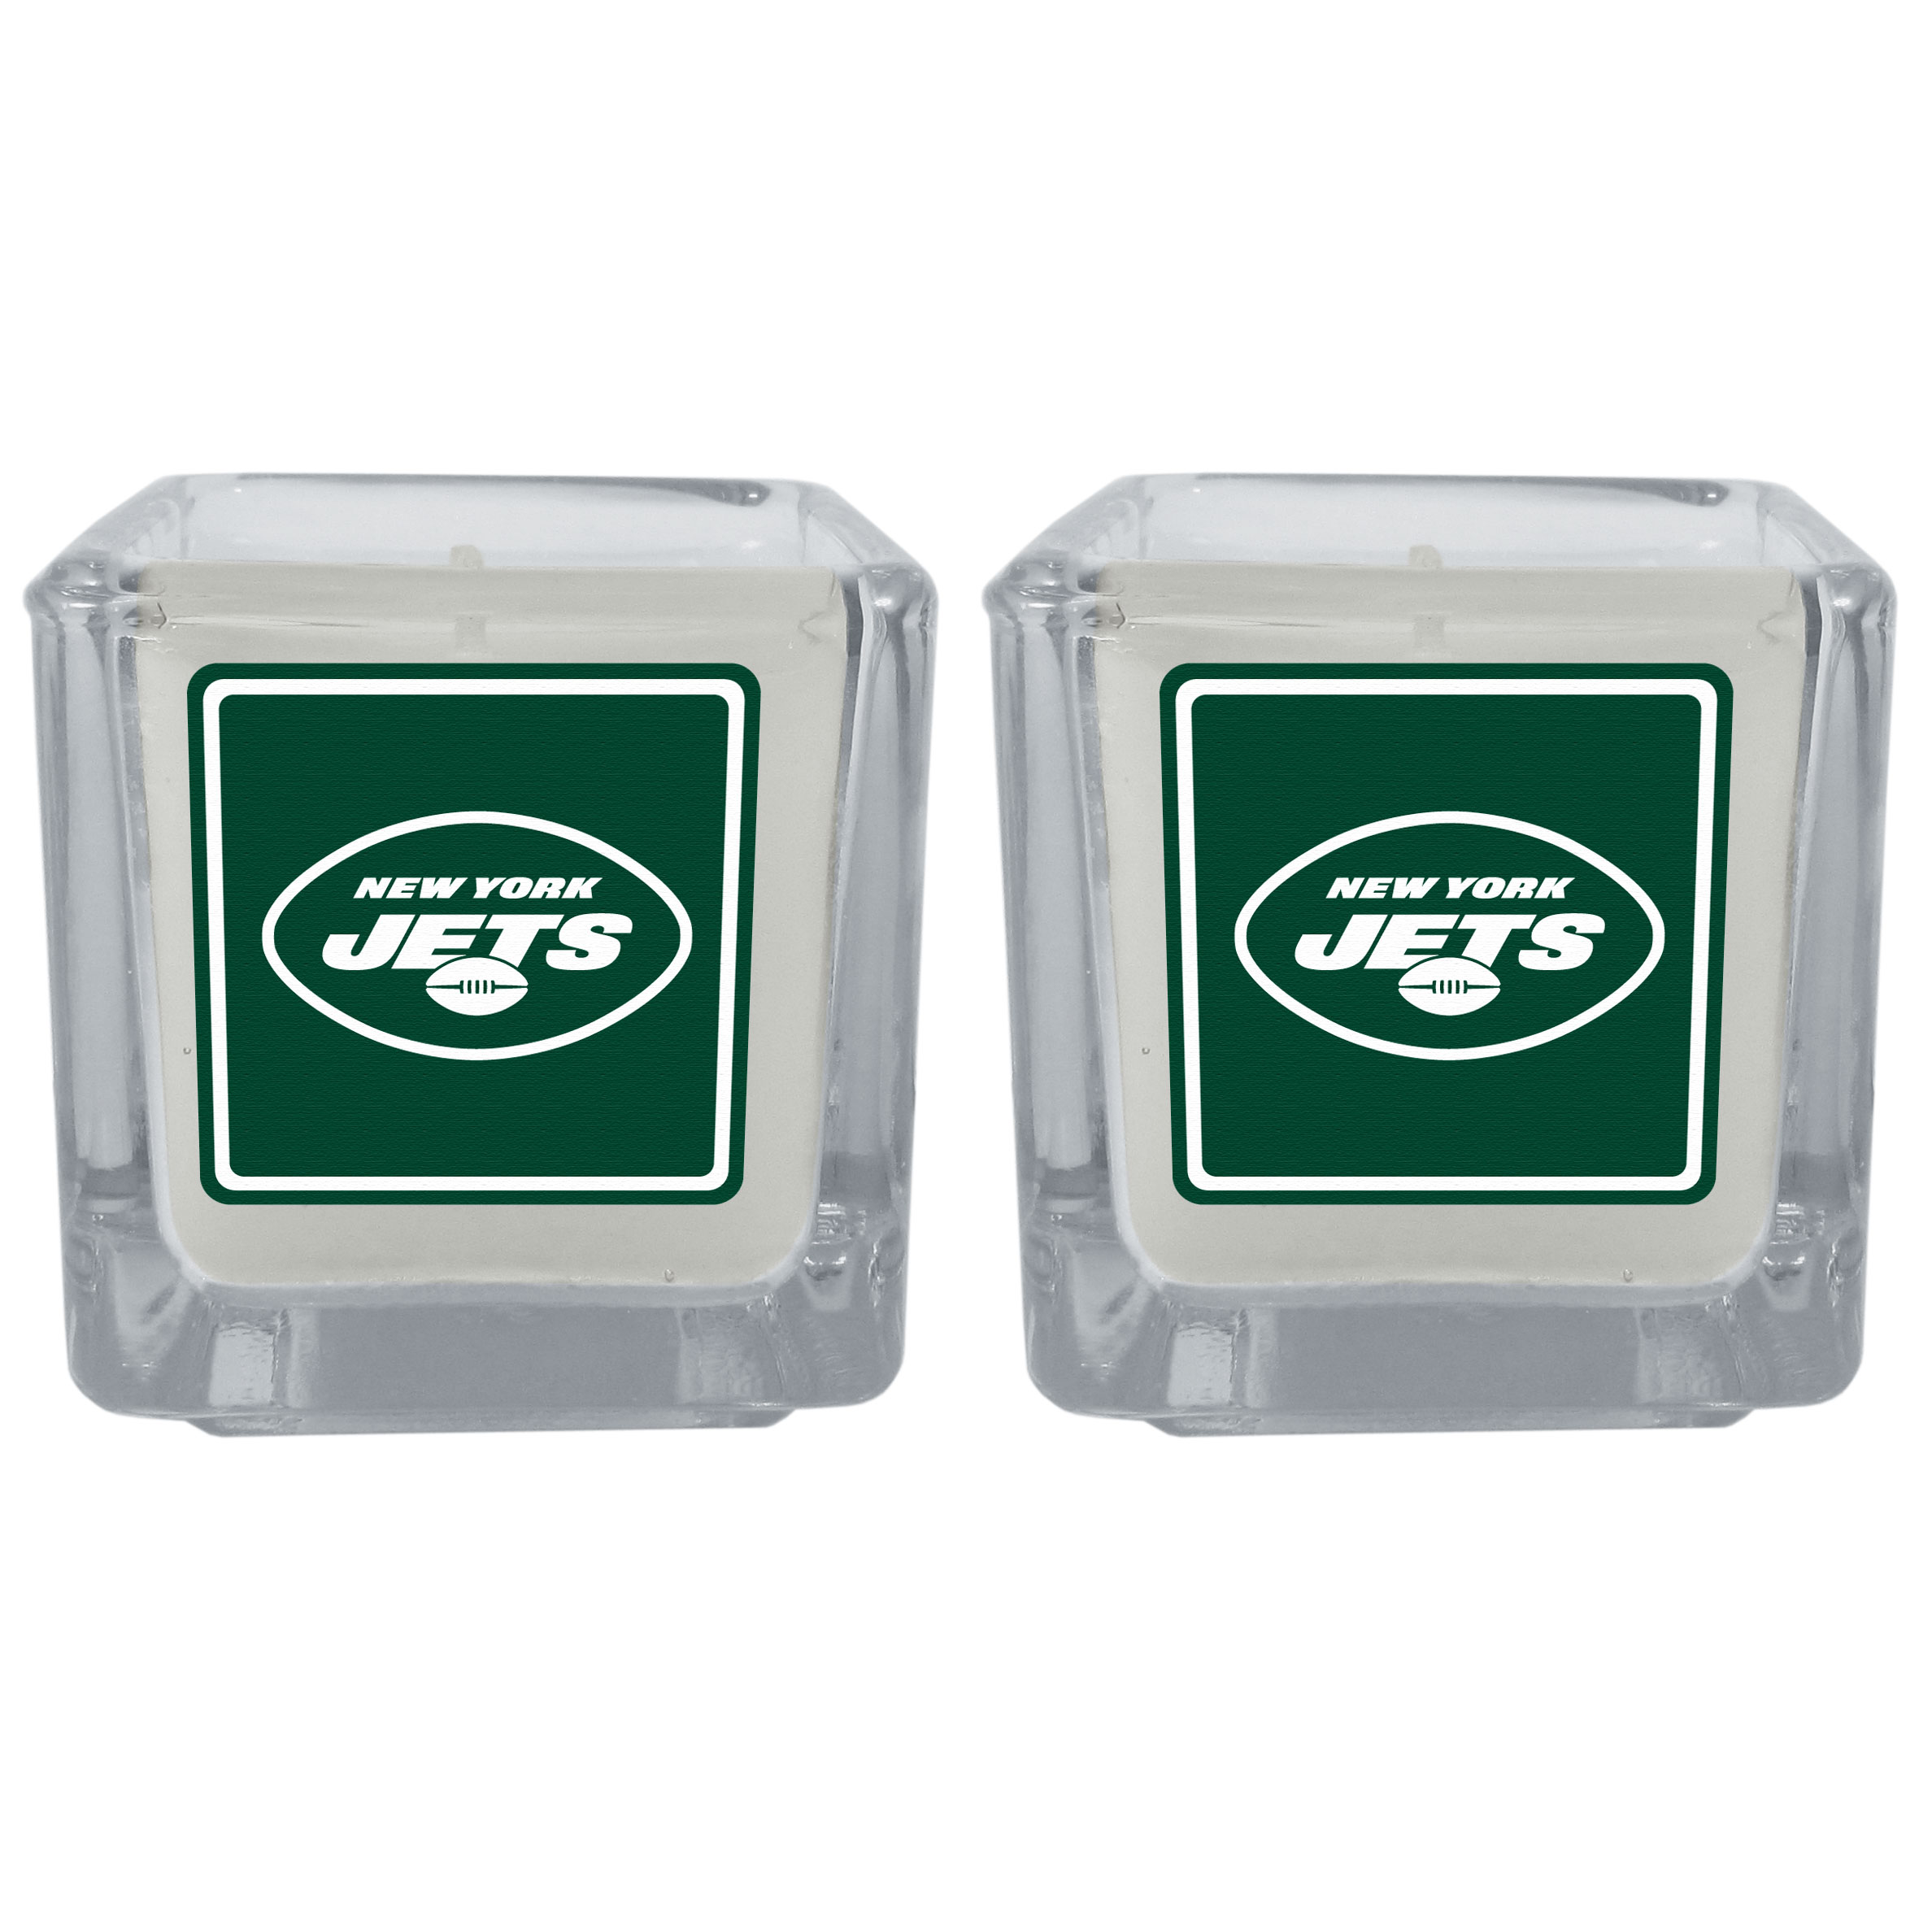 New York Jets Graphics Candle Set - Our candle set features 2 lightly vanilla scented candles with the New York Jets logo expertly printed on front. The candles are 2 inches tall in the votive style.